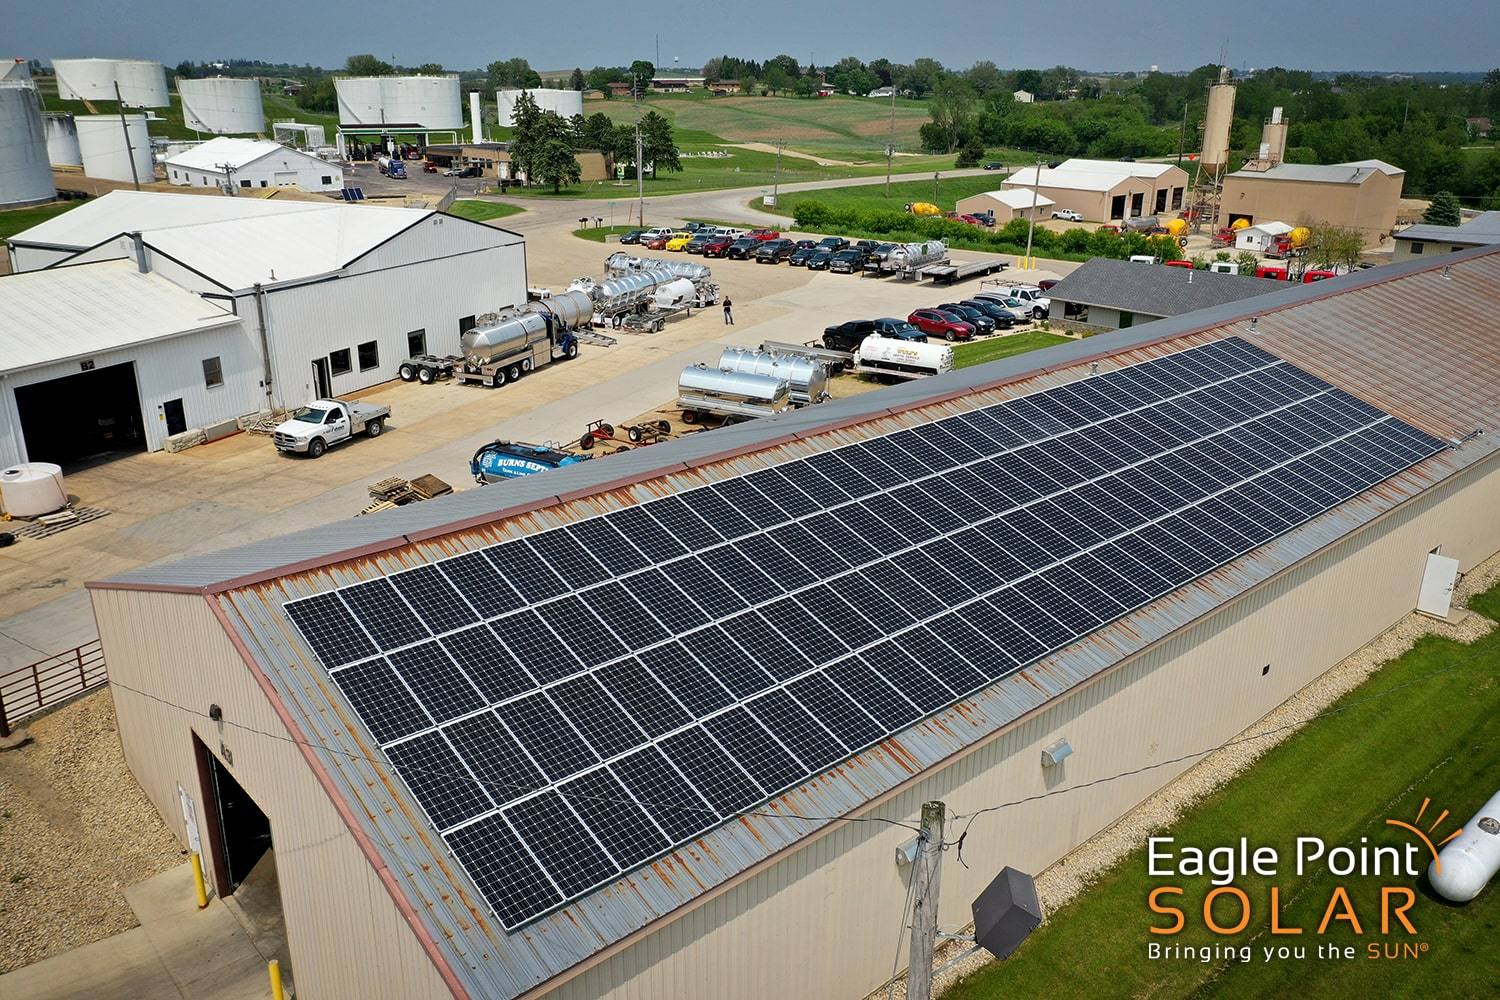 Photo of commercial roof mounted solar array on Advance Pump